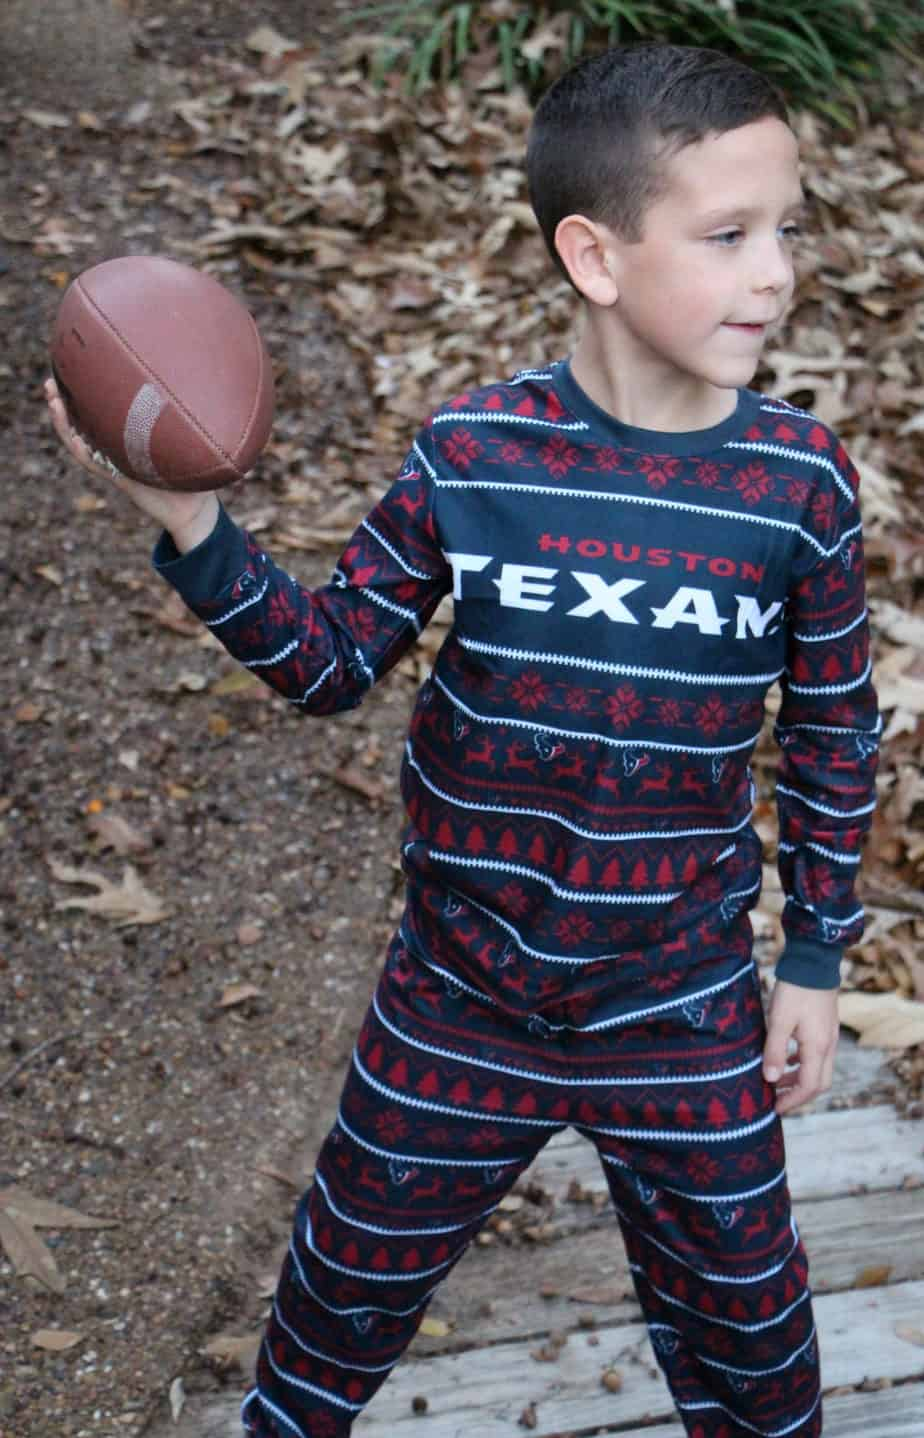 family football pajamas houston texans